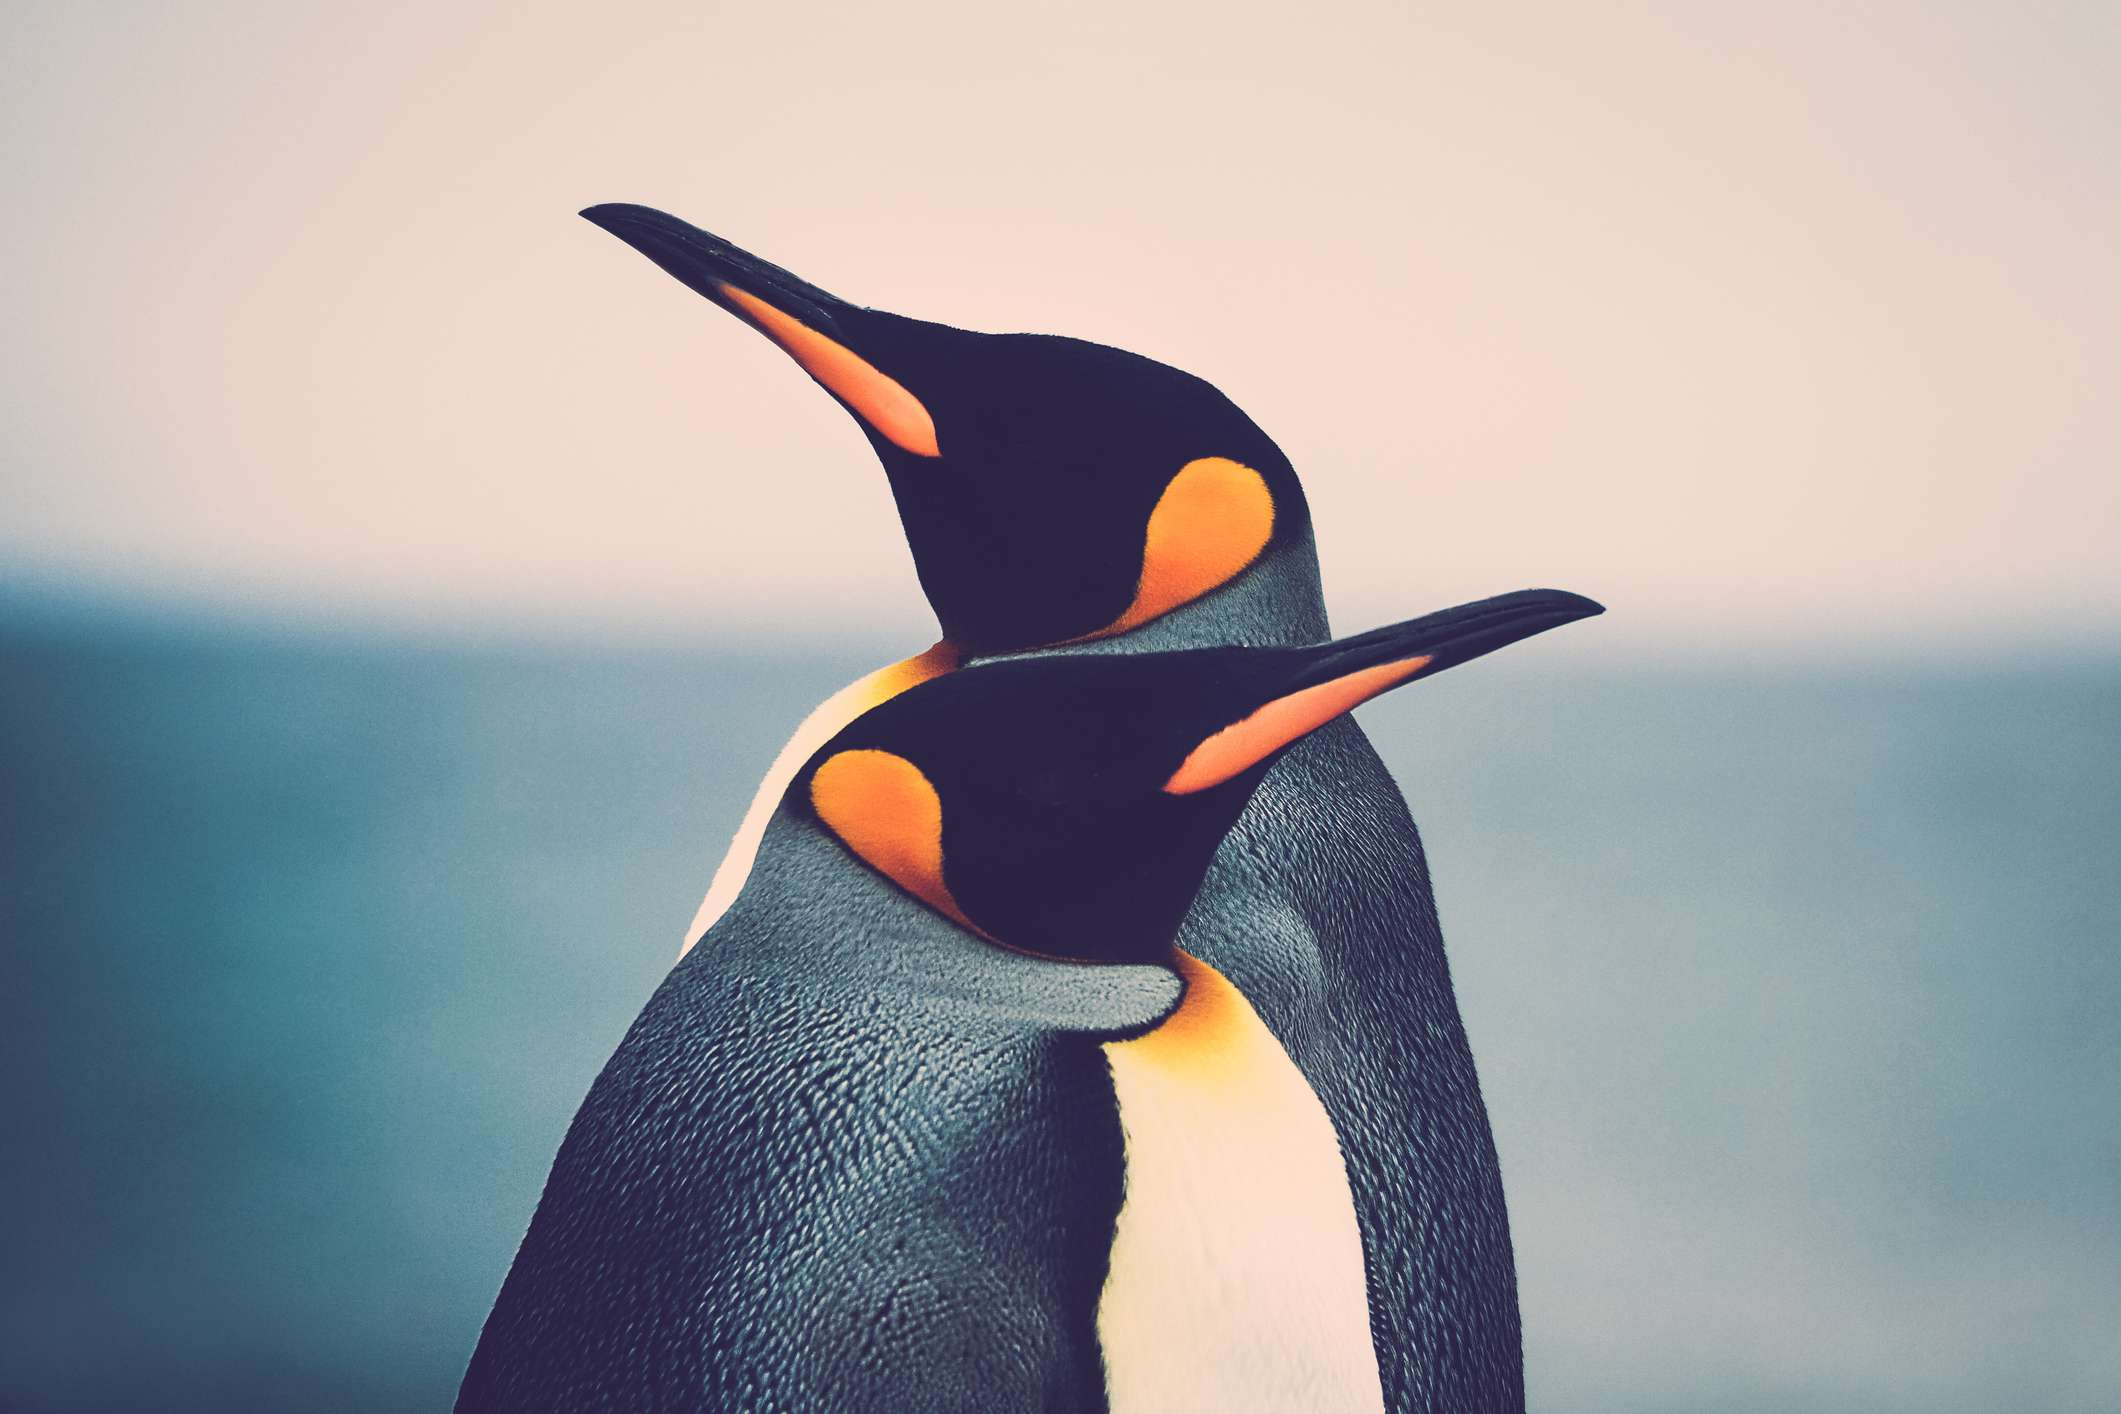 King Penguin couple (Aptenodytes patagonicus) standing in front of each other